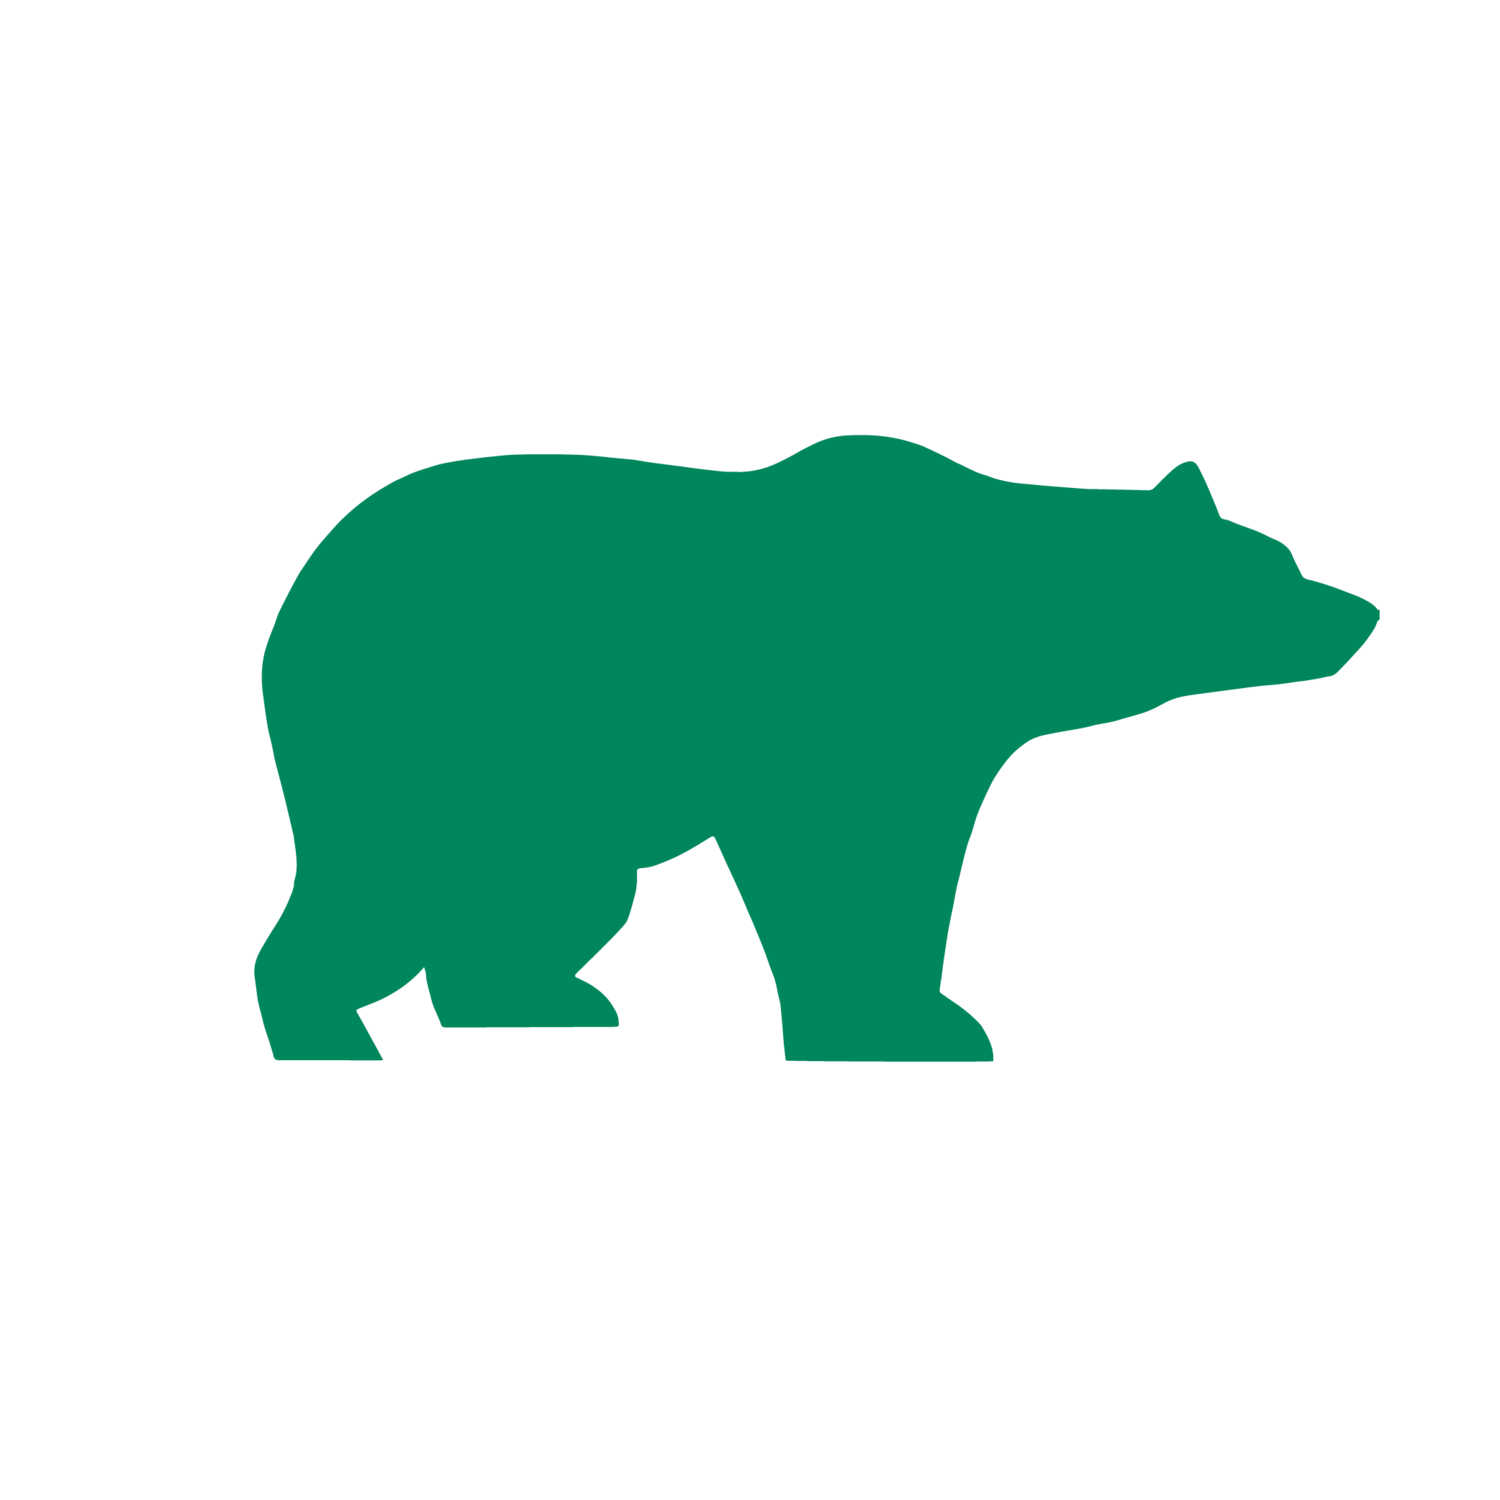 The Baer Minimalist